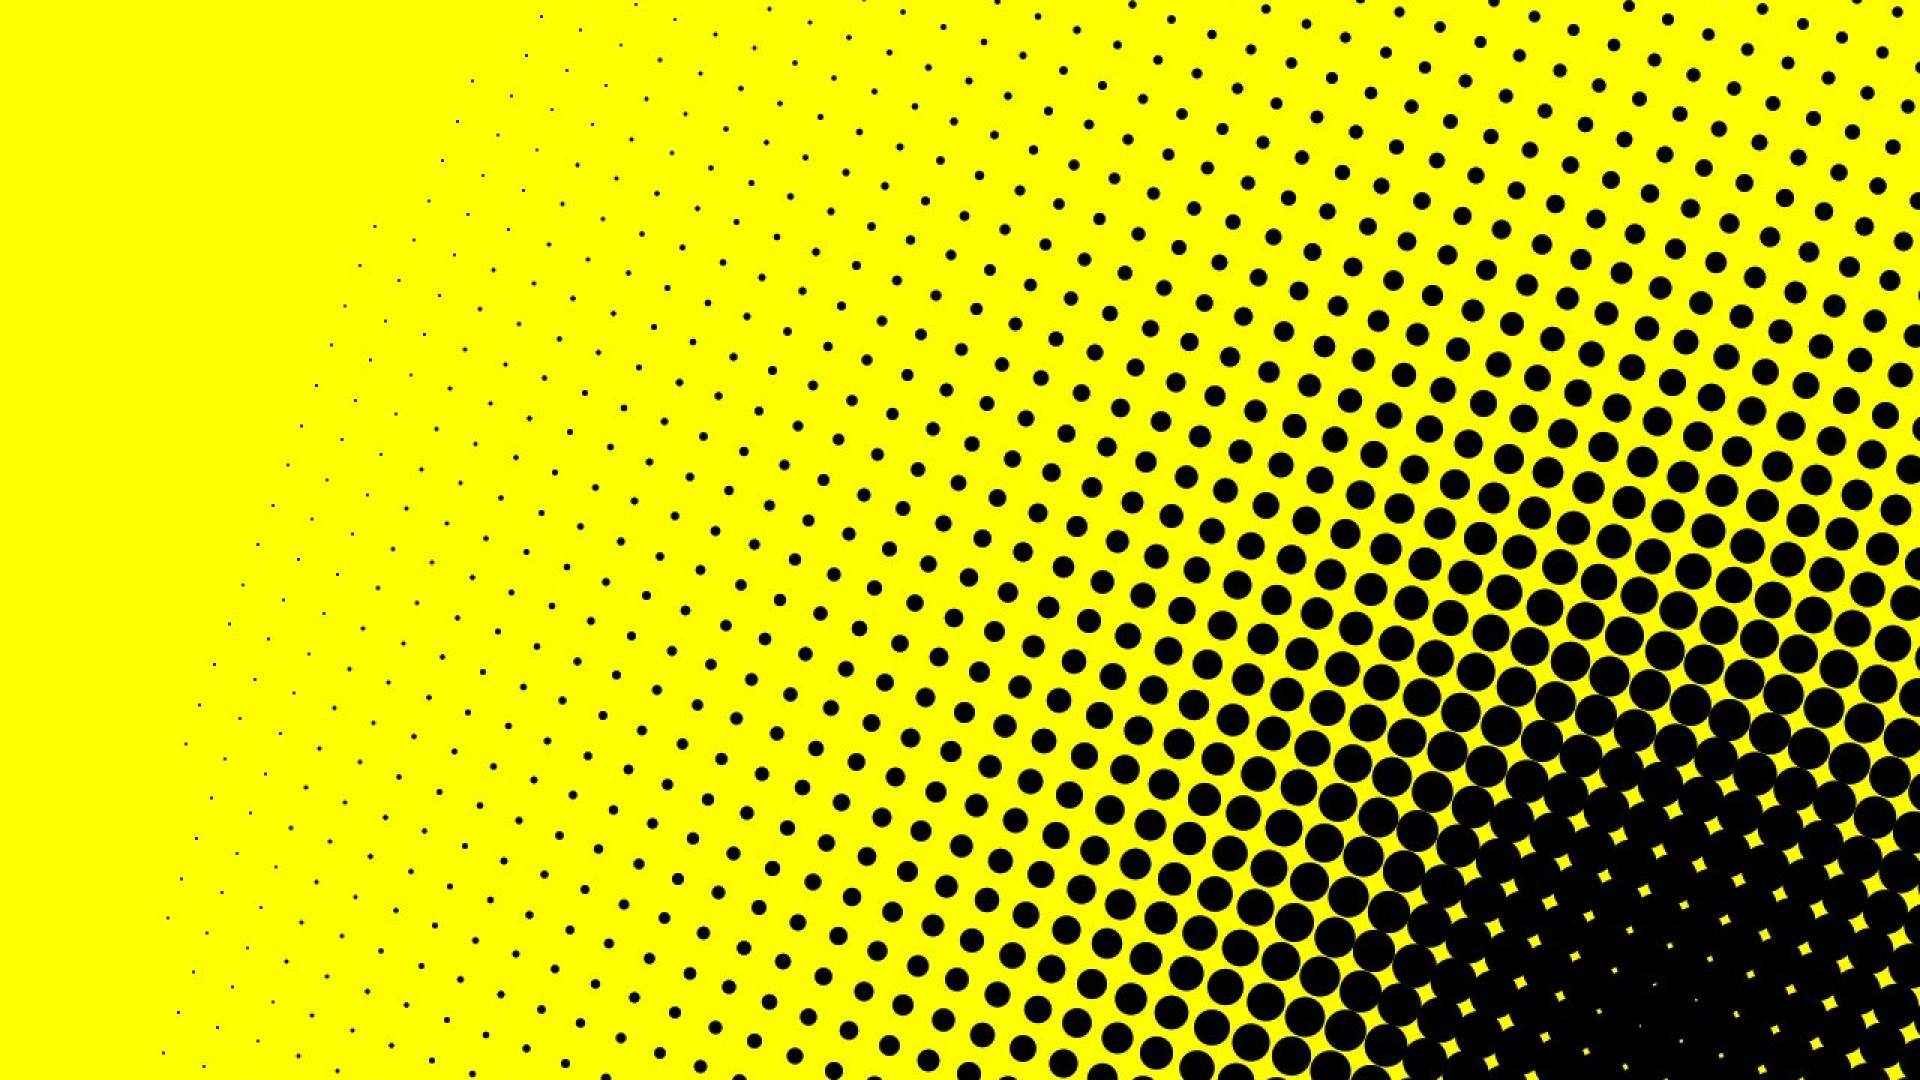 Dots Yellow Background Abstract Hd Wallpaper Hq